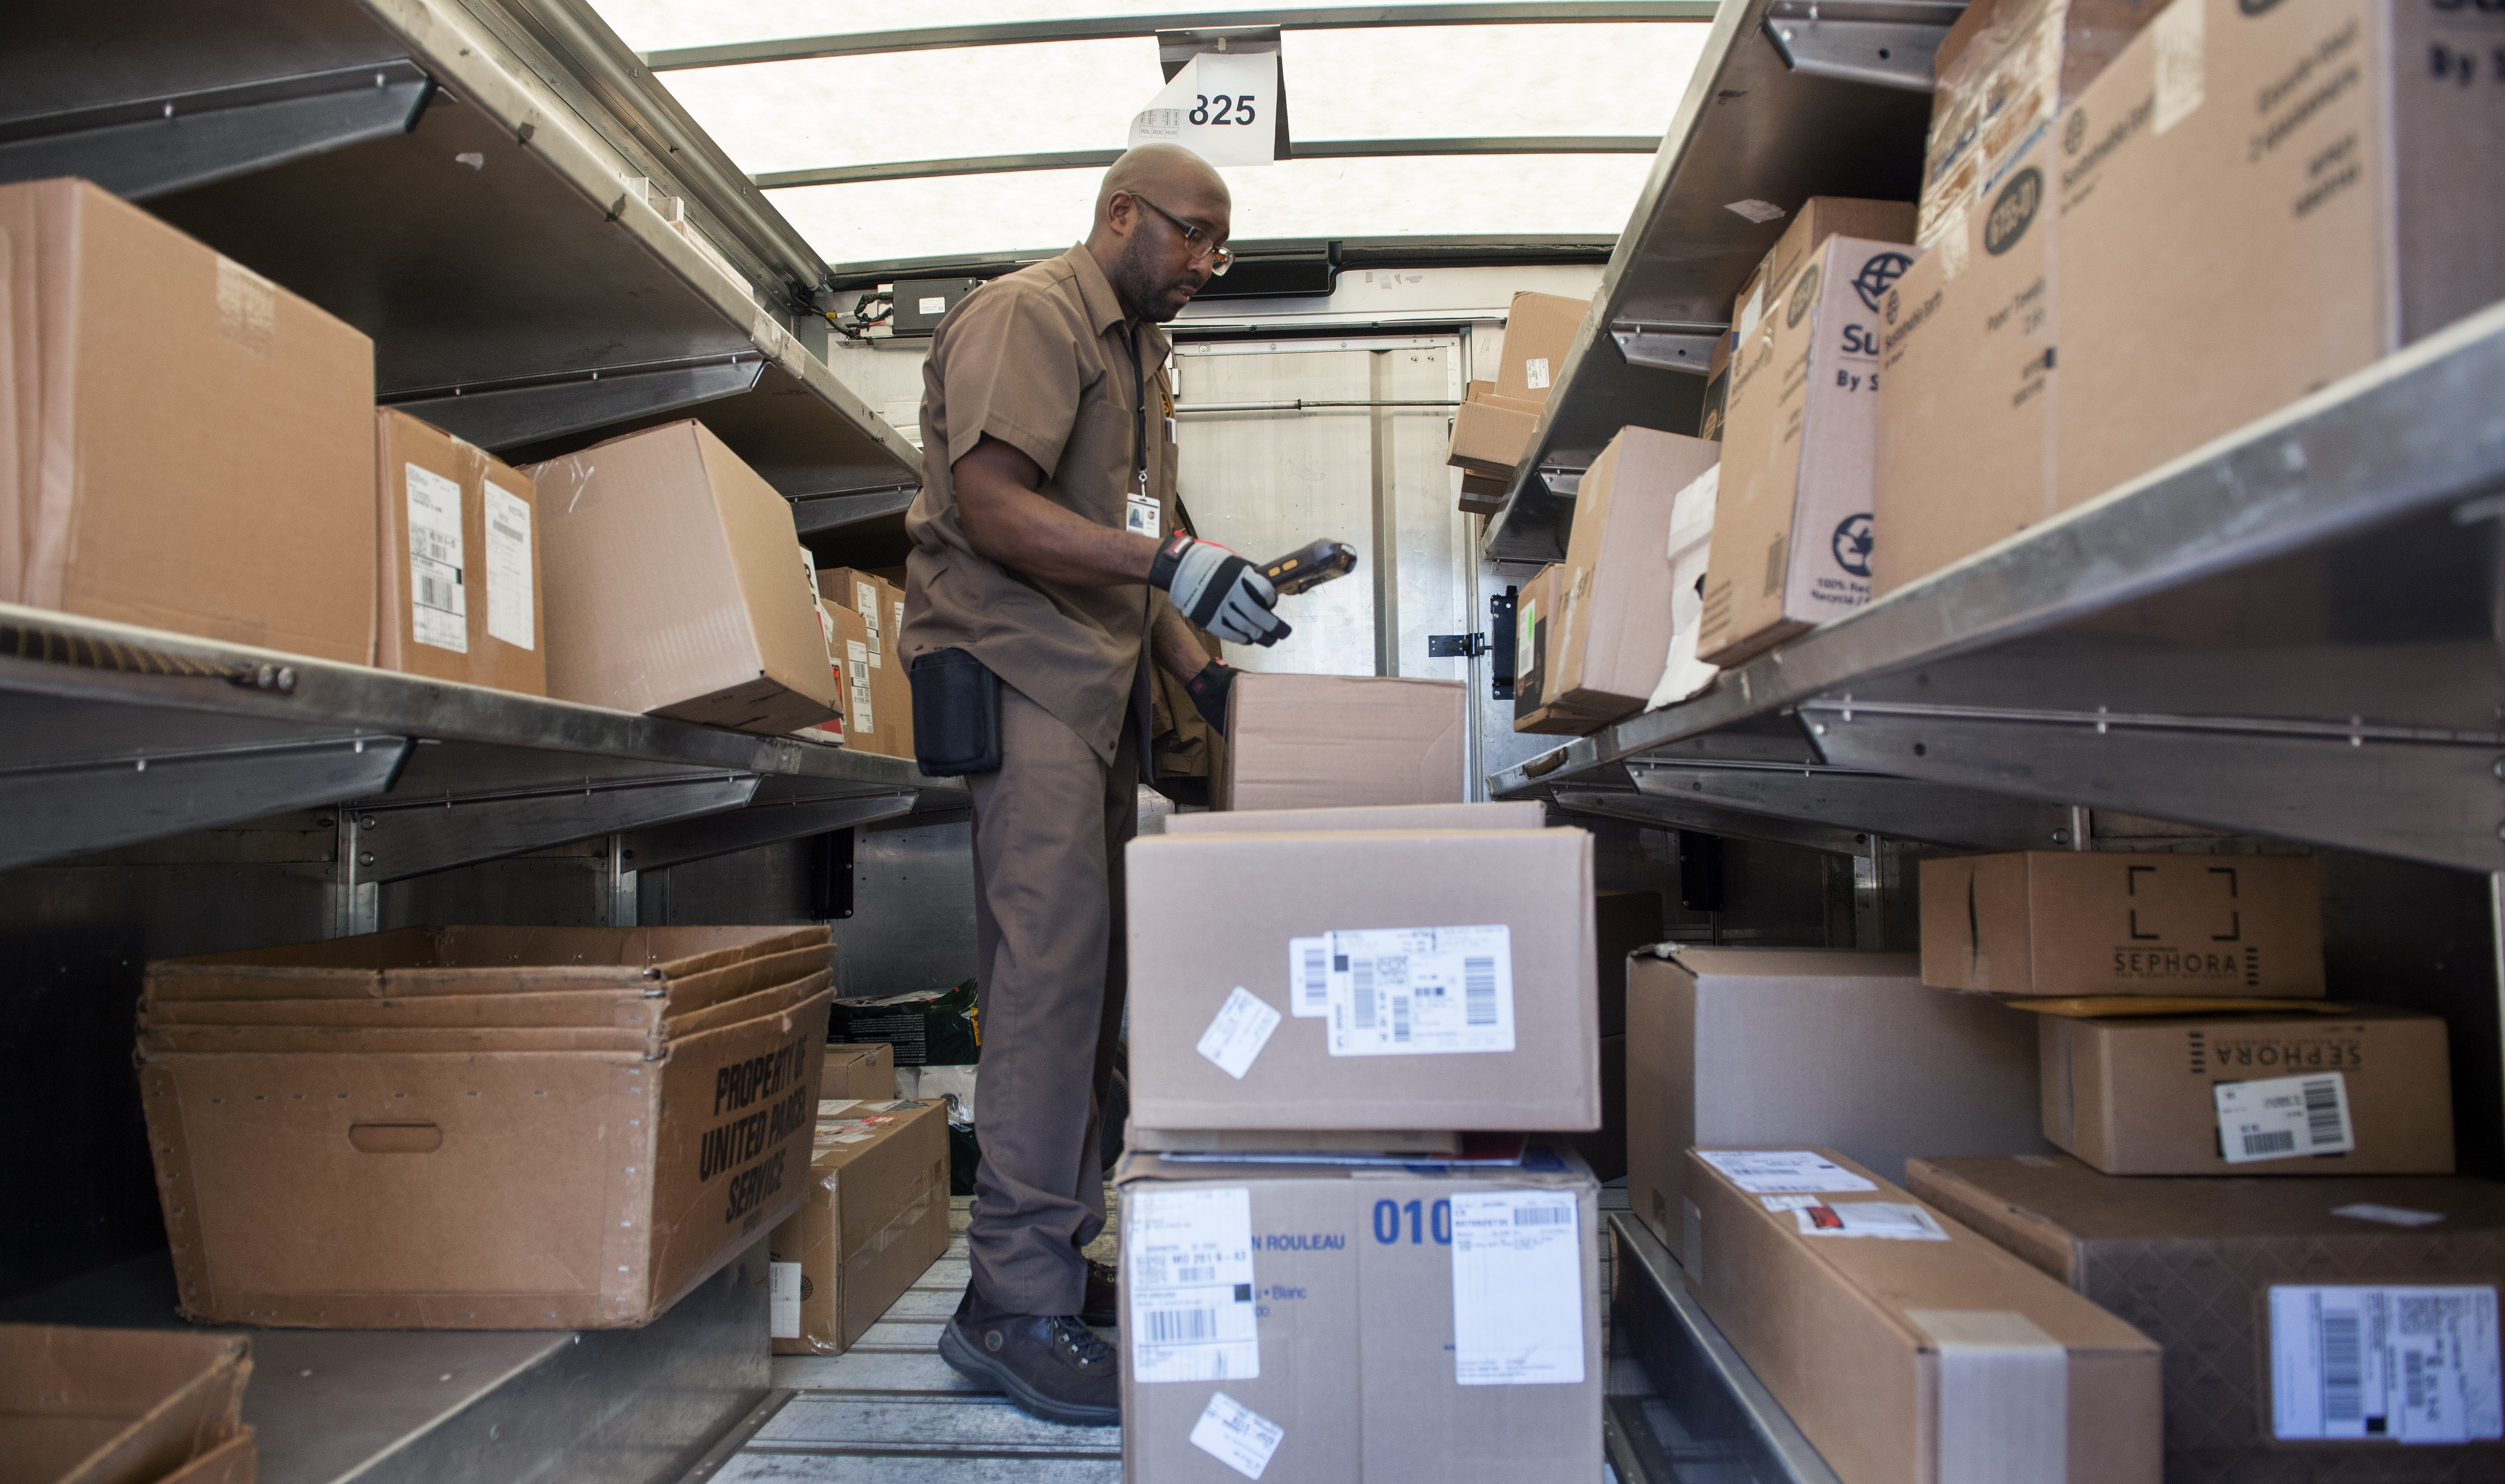 A UPS driver inventories and organizes his packages  in the back of his delivery truck  November 17, 2015, in Washington, DC.  (Getty)